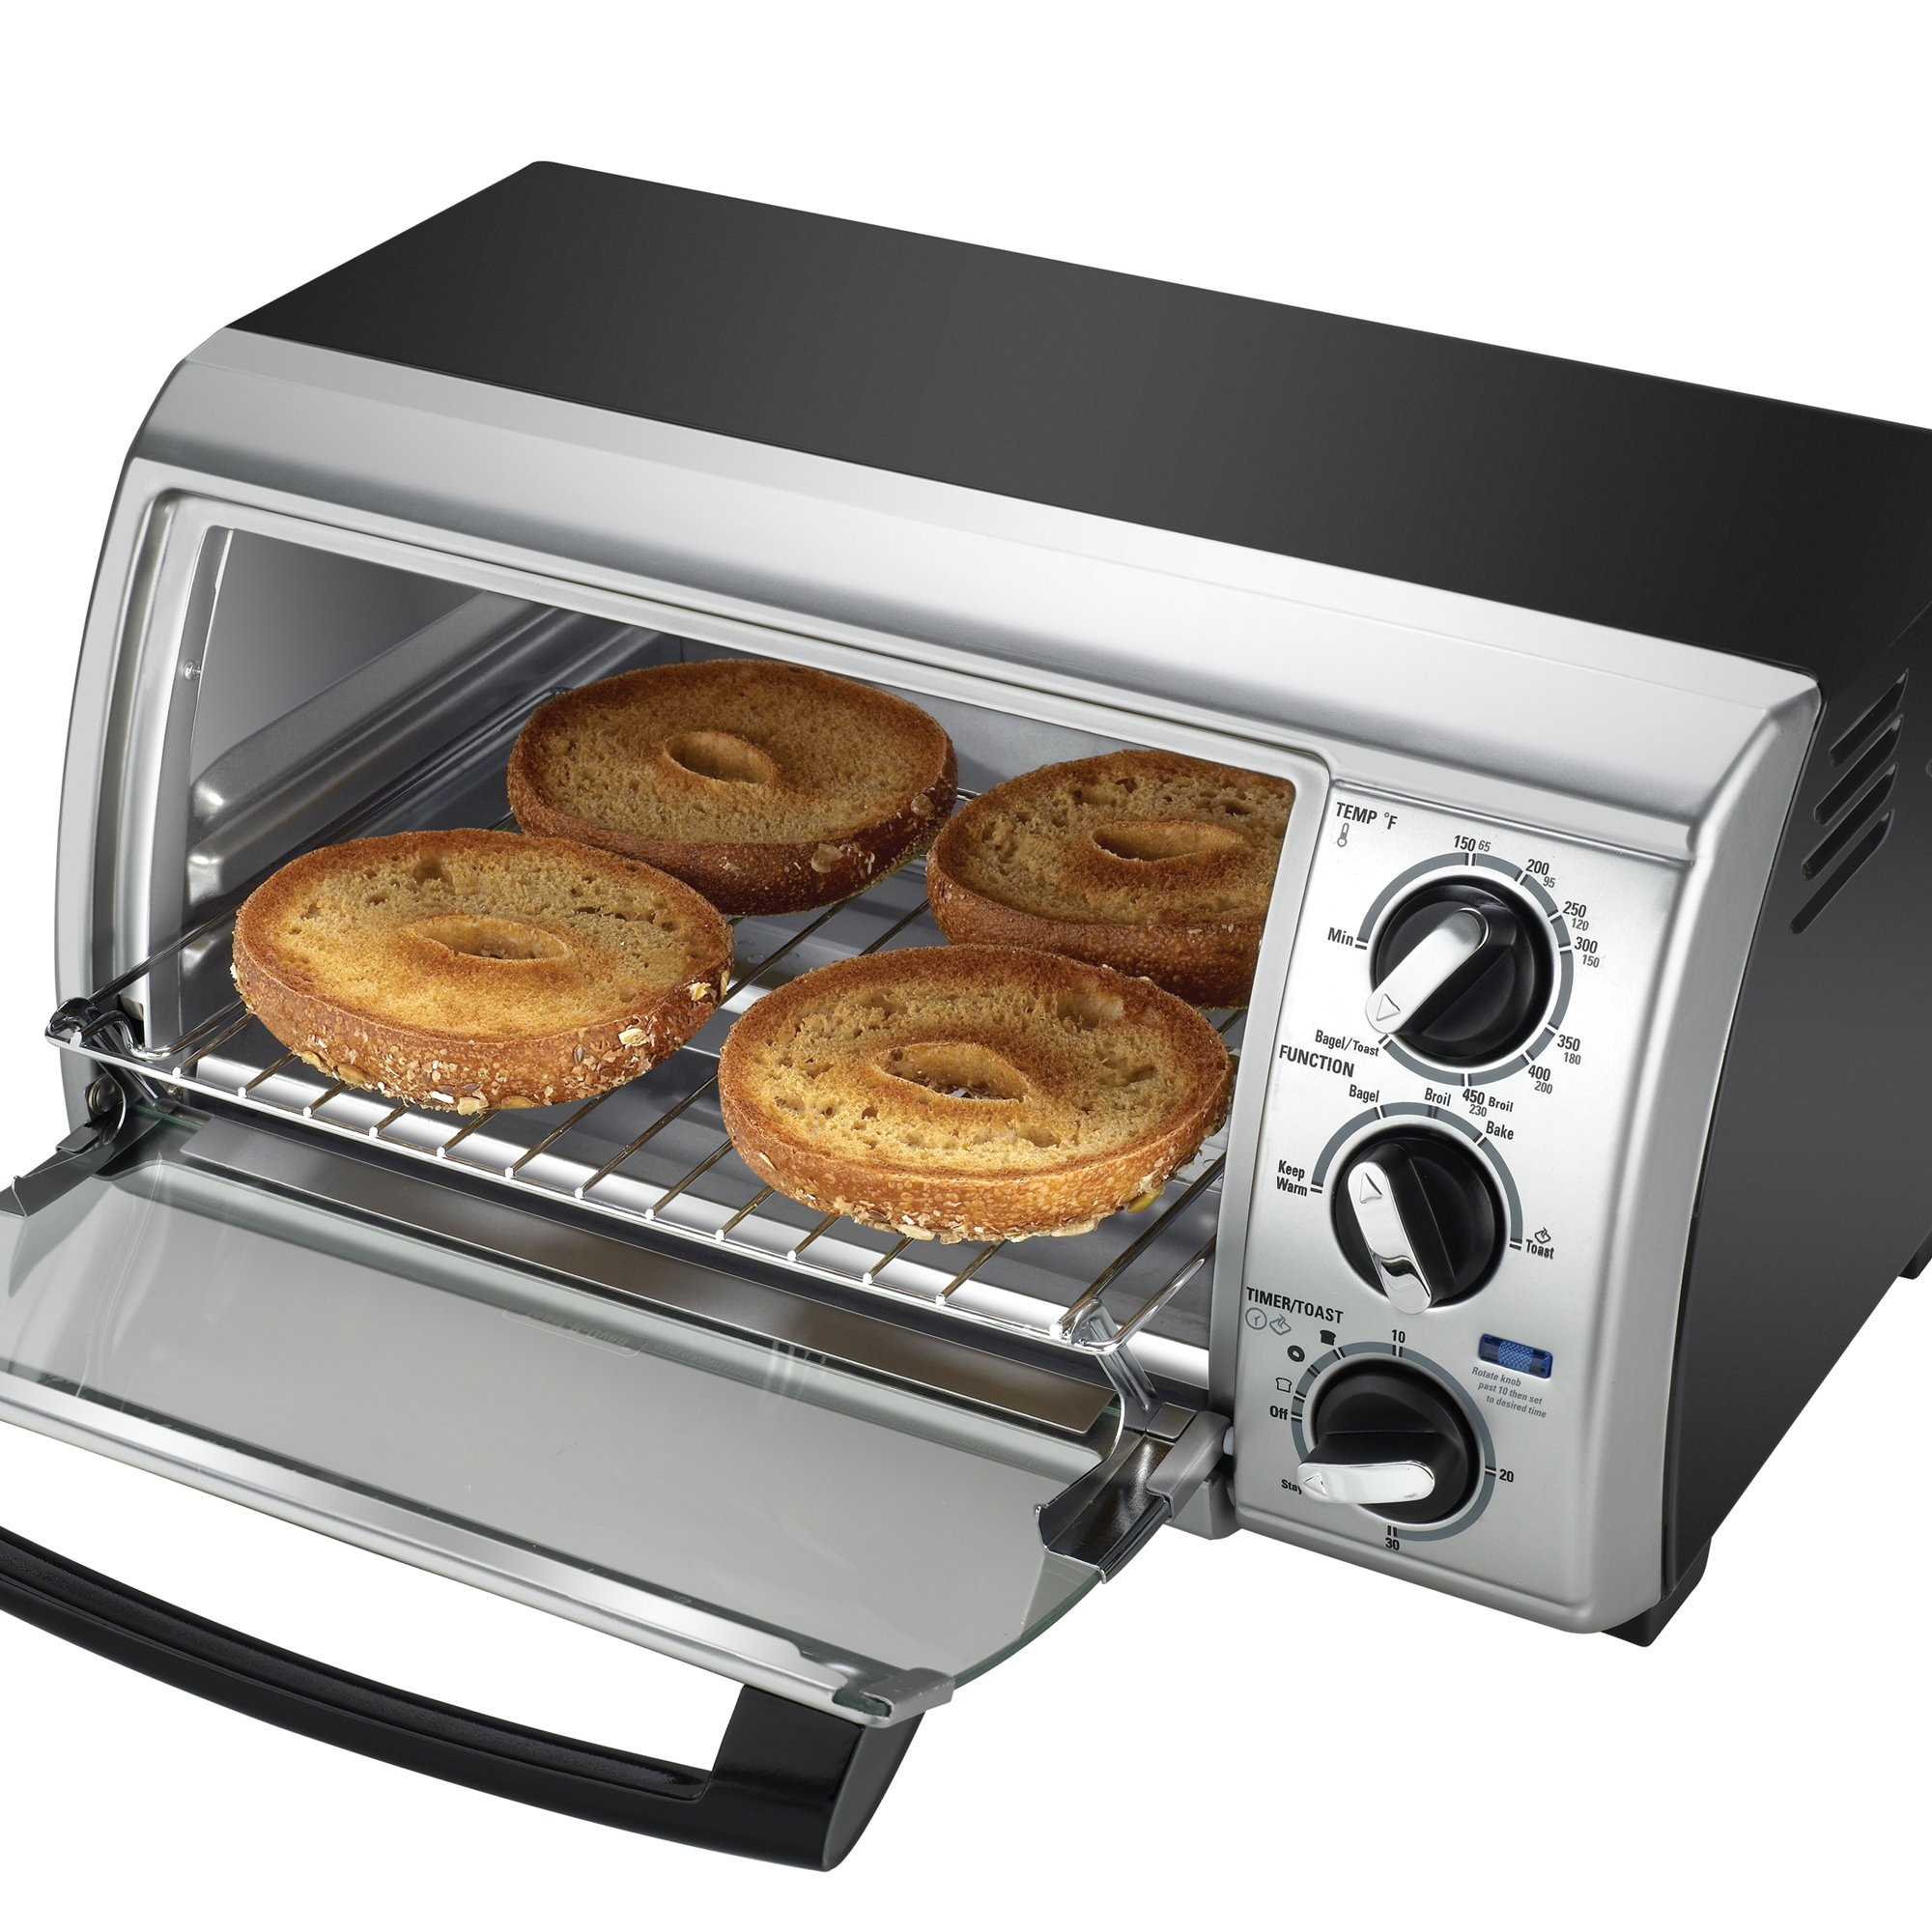 Countertop Oven Philippines Galleon Black And Decker Tro480bs 4 Slice Toaster Oven